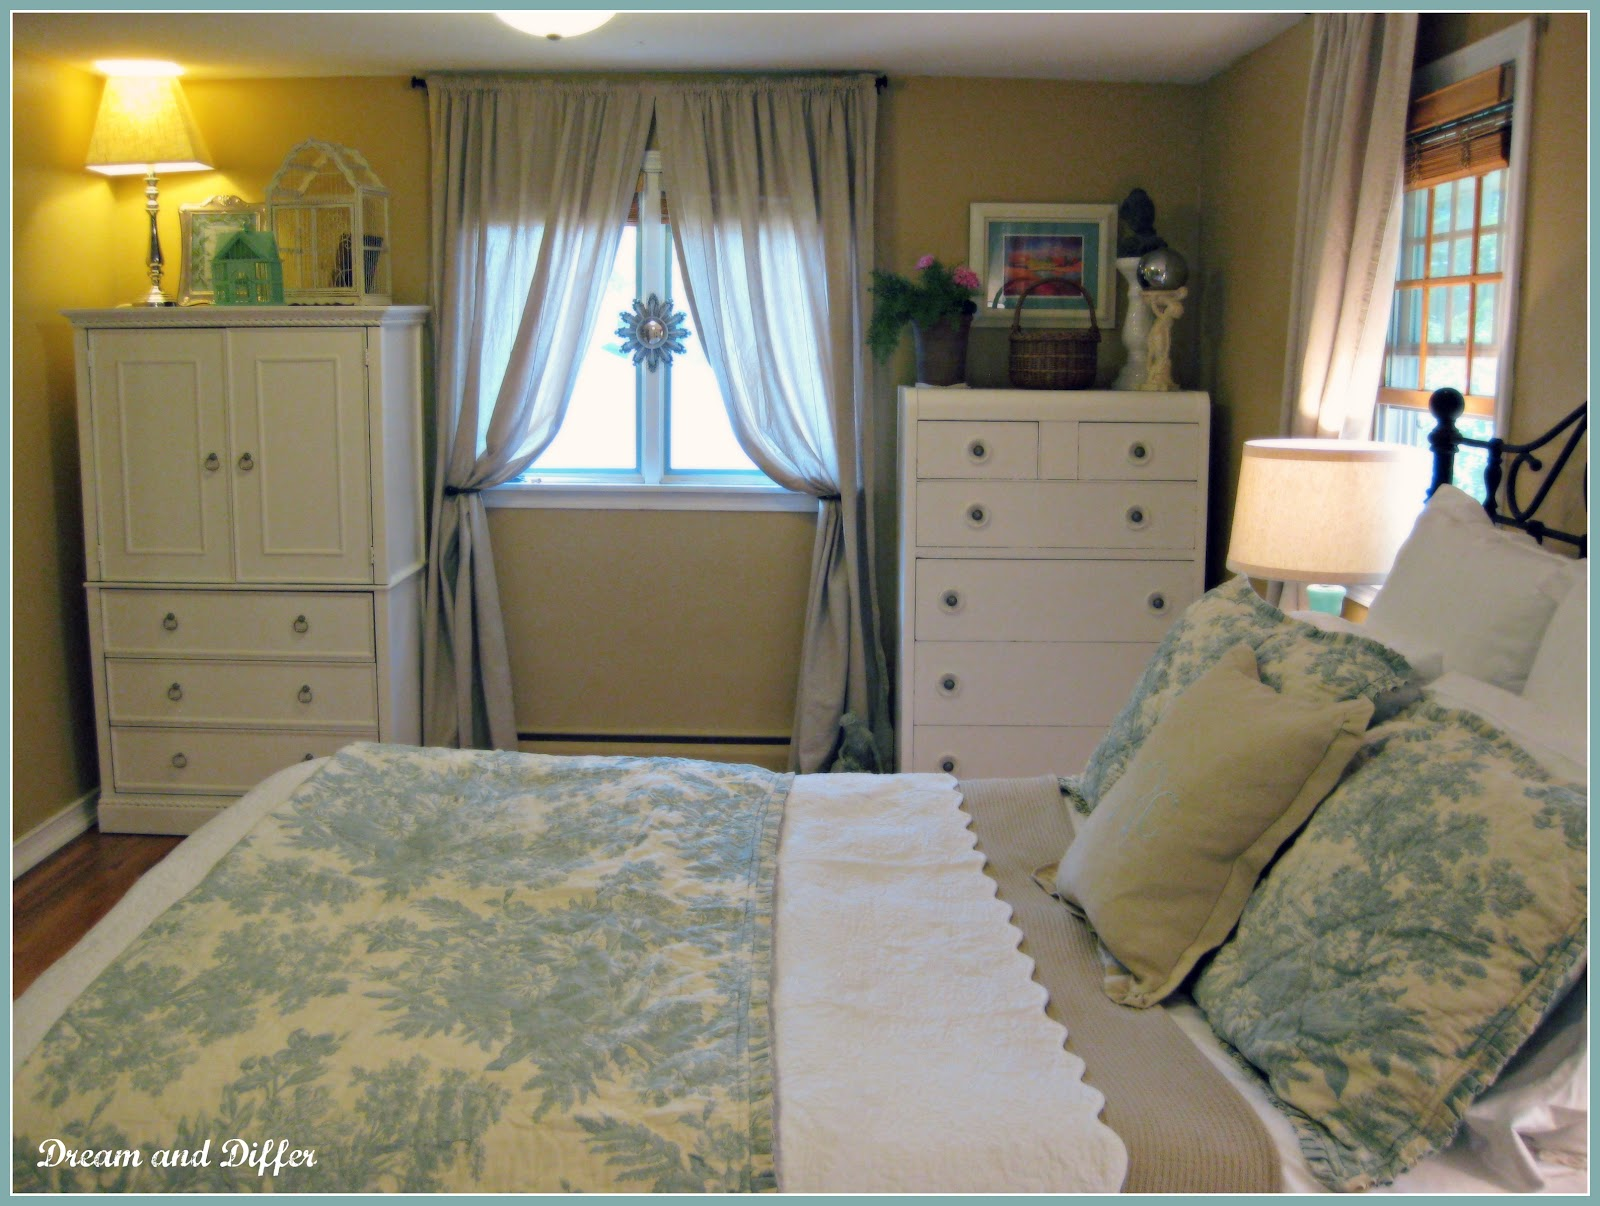 Dream and differ master bedroom reveal for Bed placement in small room